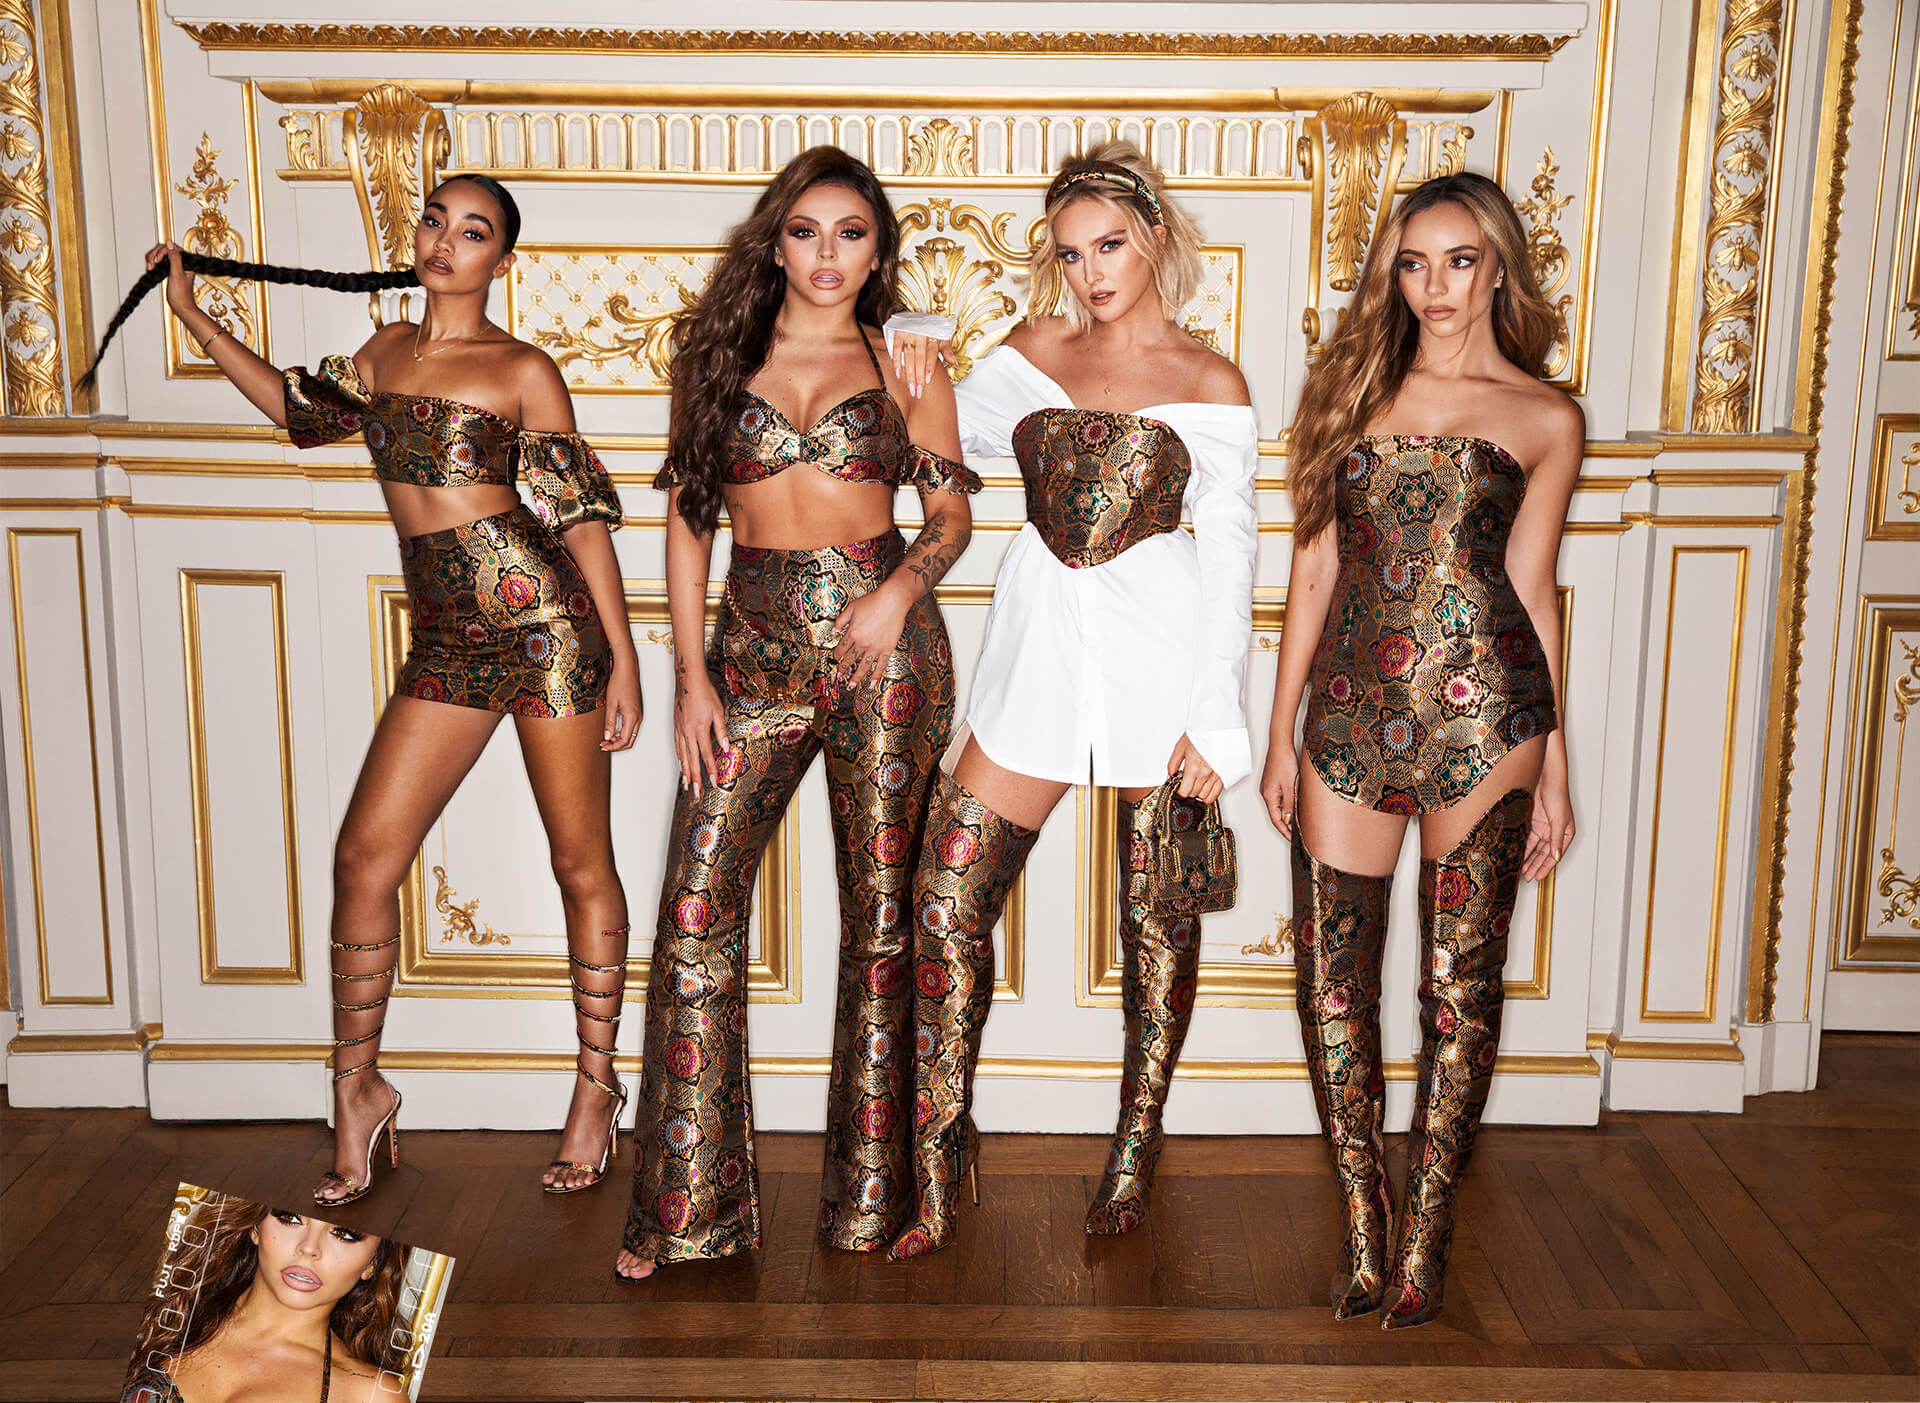 Little Mix Lookbook Image Desktop 15.1